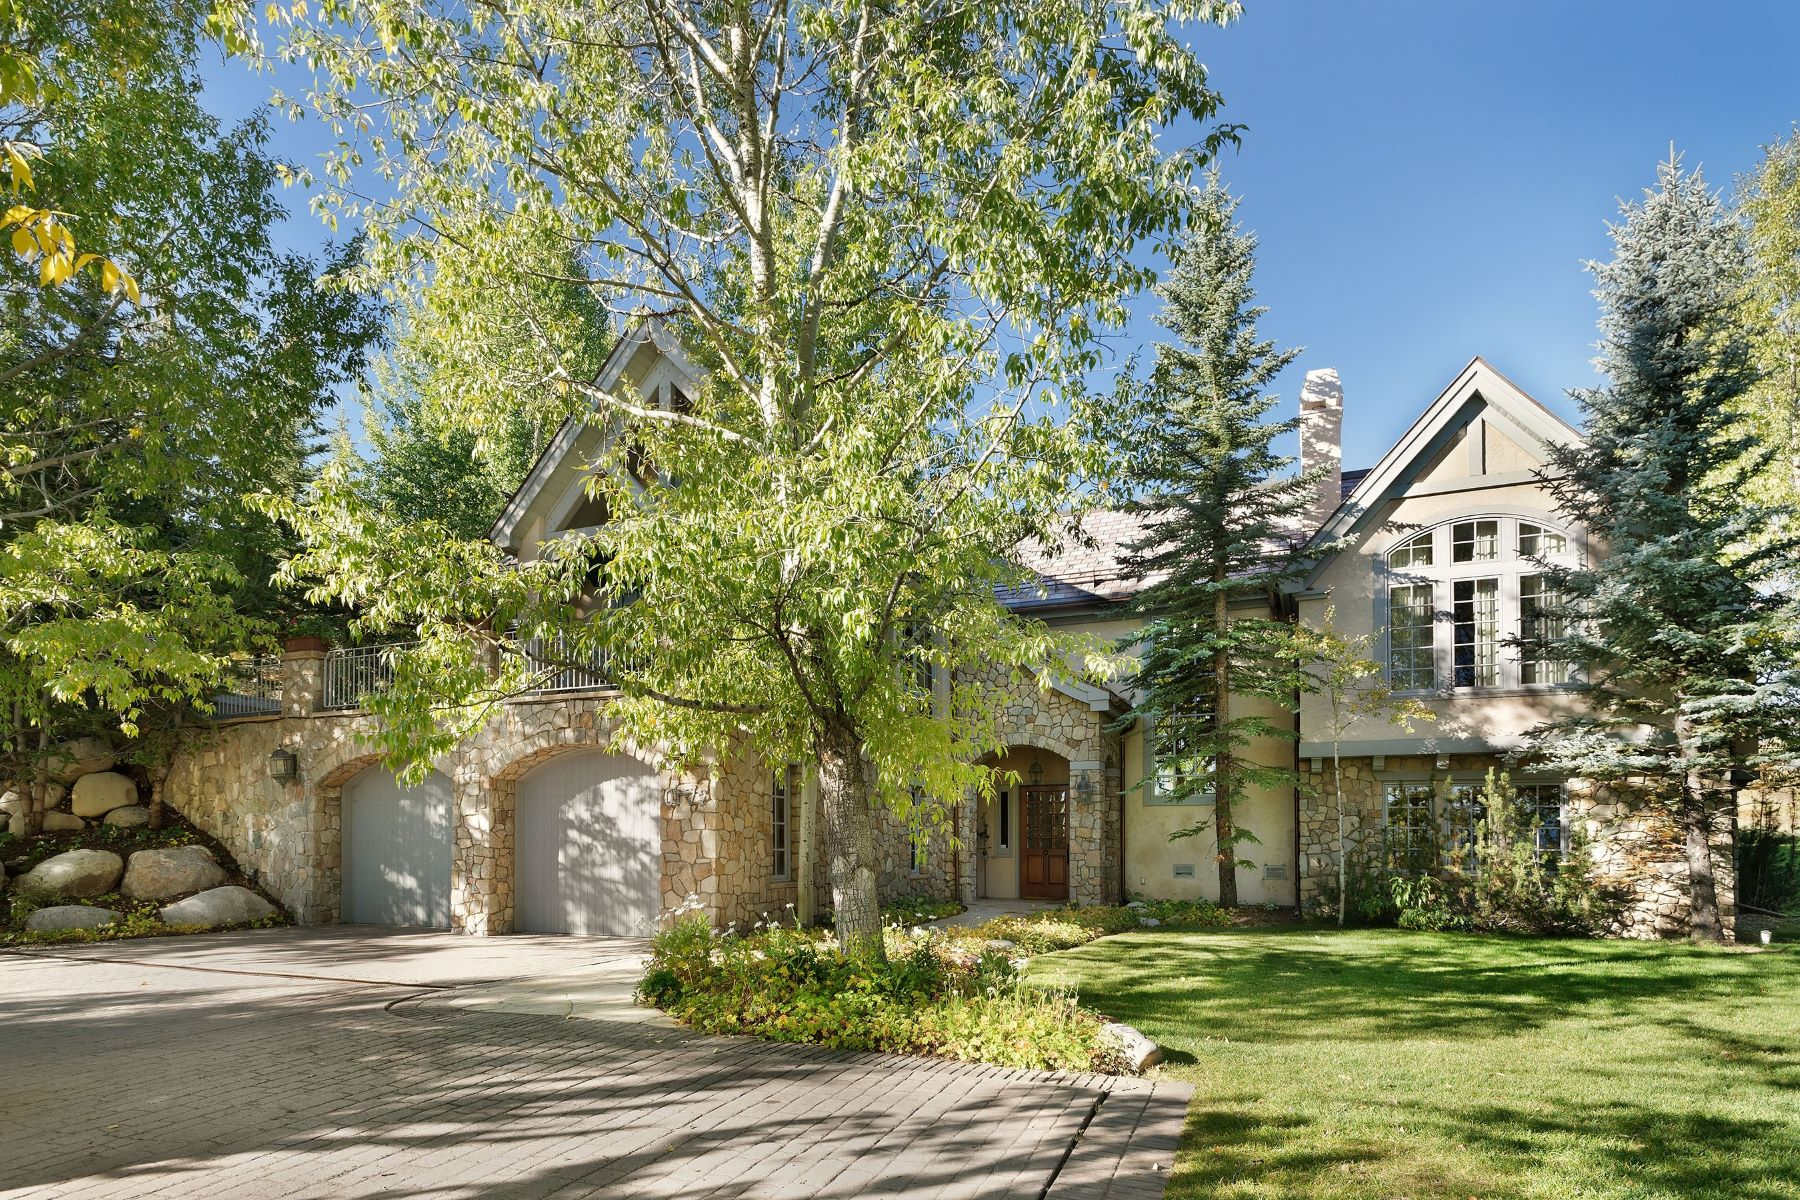 Single Family Home for Sale at Snowmass Village Retreat 179 Divide Drive, Snowmass Village, Colorado, 81615 United States